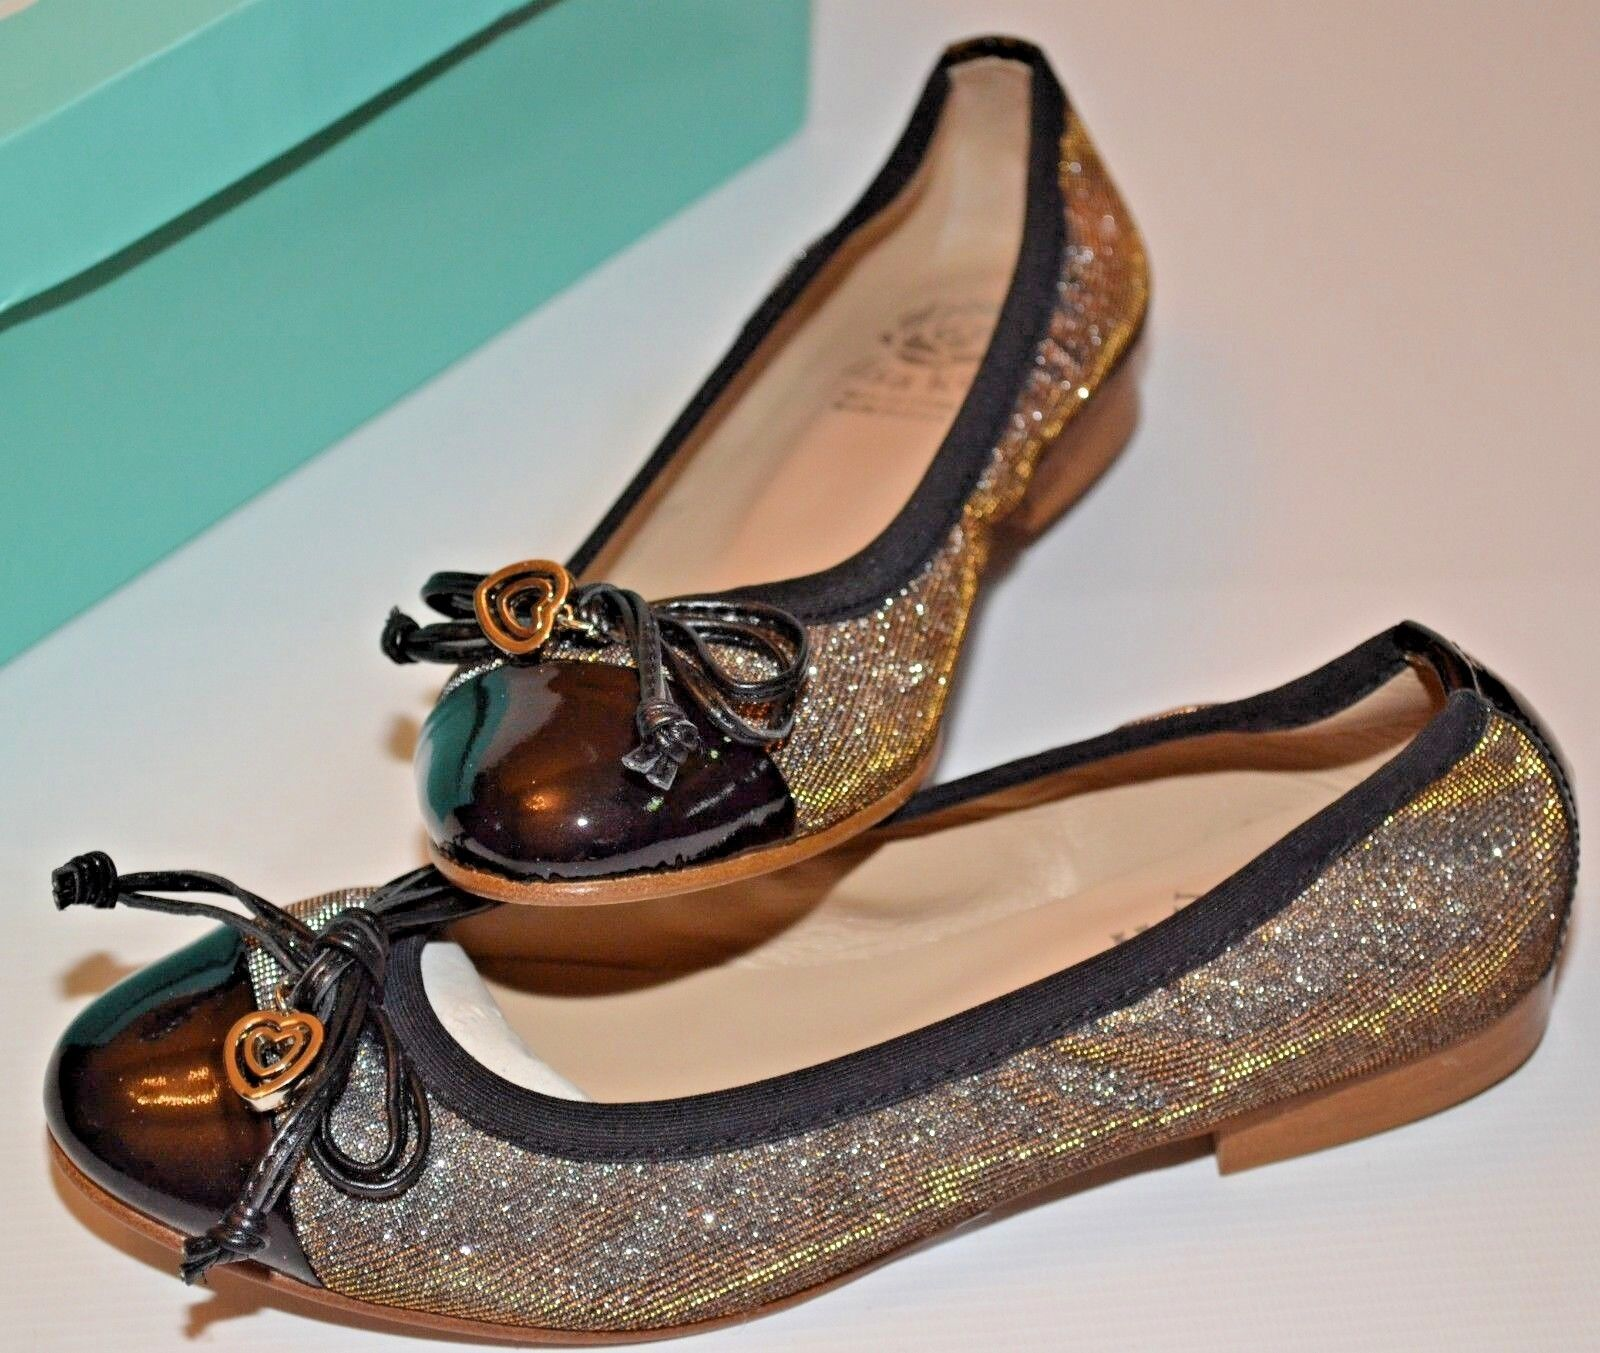 LISA KAY DOLLY IRIDESCENT PEWTER & BLACK LEATHER BALLERINA SHOES UK 3 EURO 36